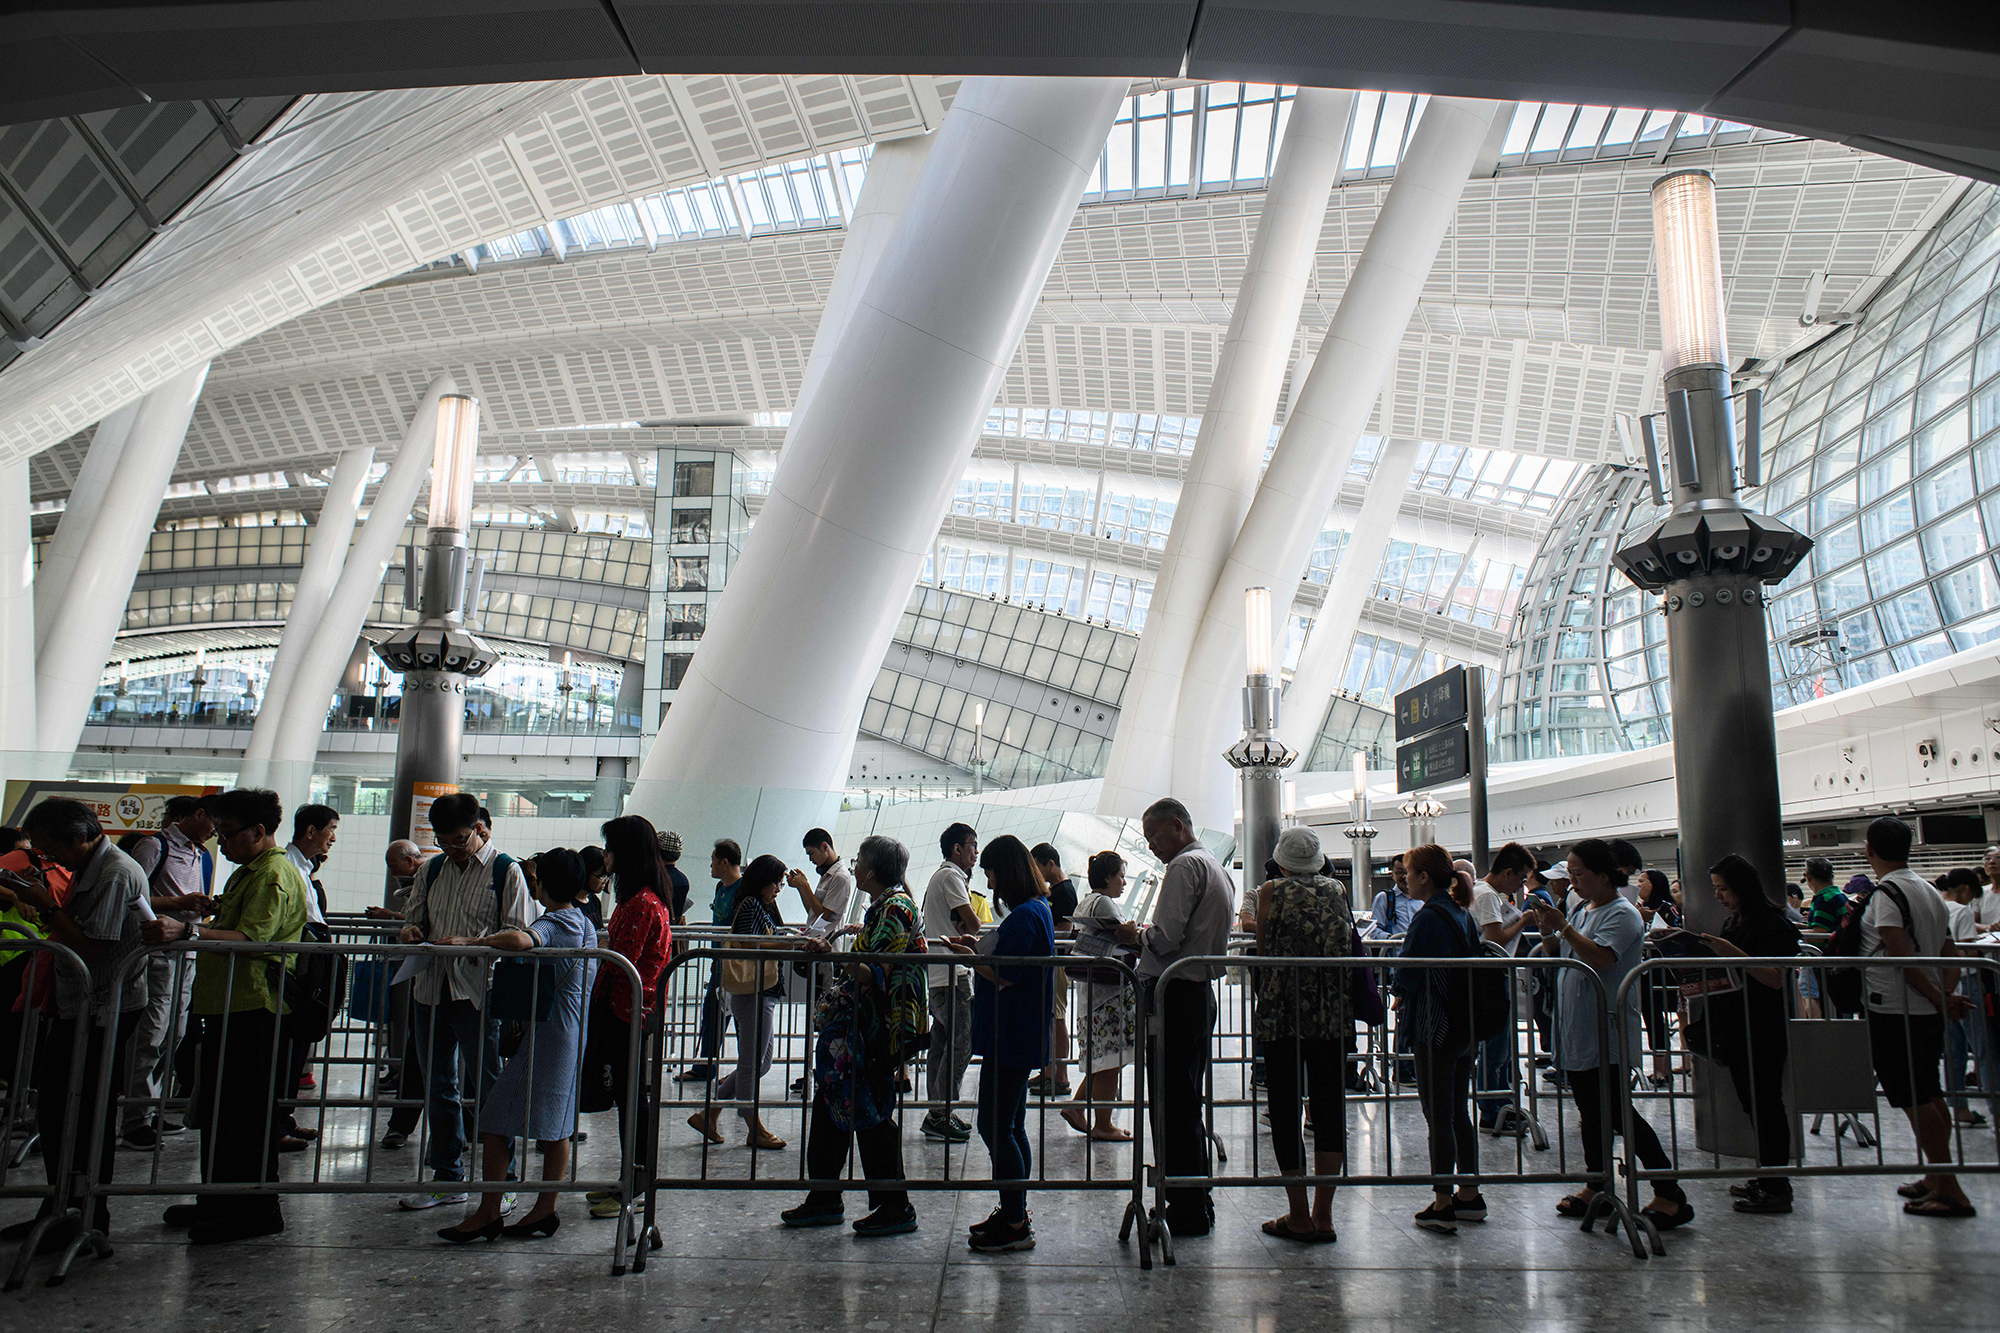 Customers queue to purchase tickets on September 10, 2018.